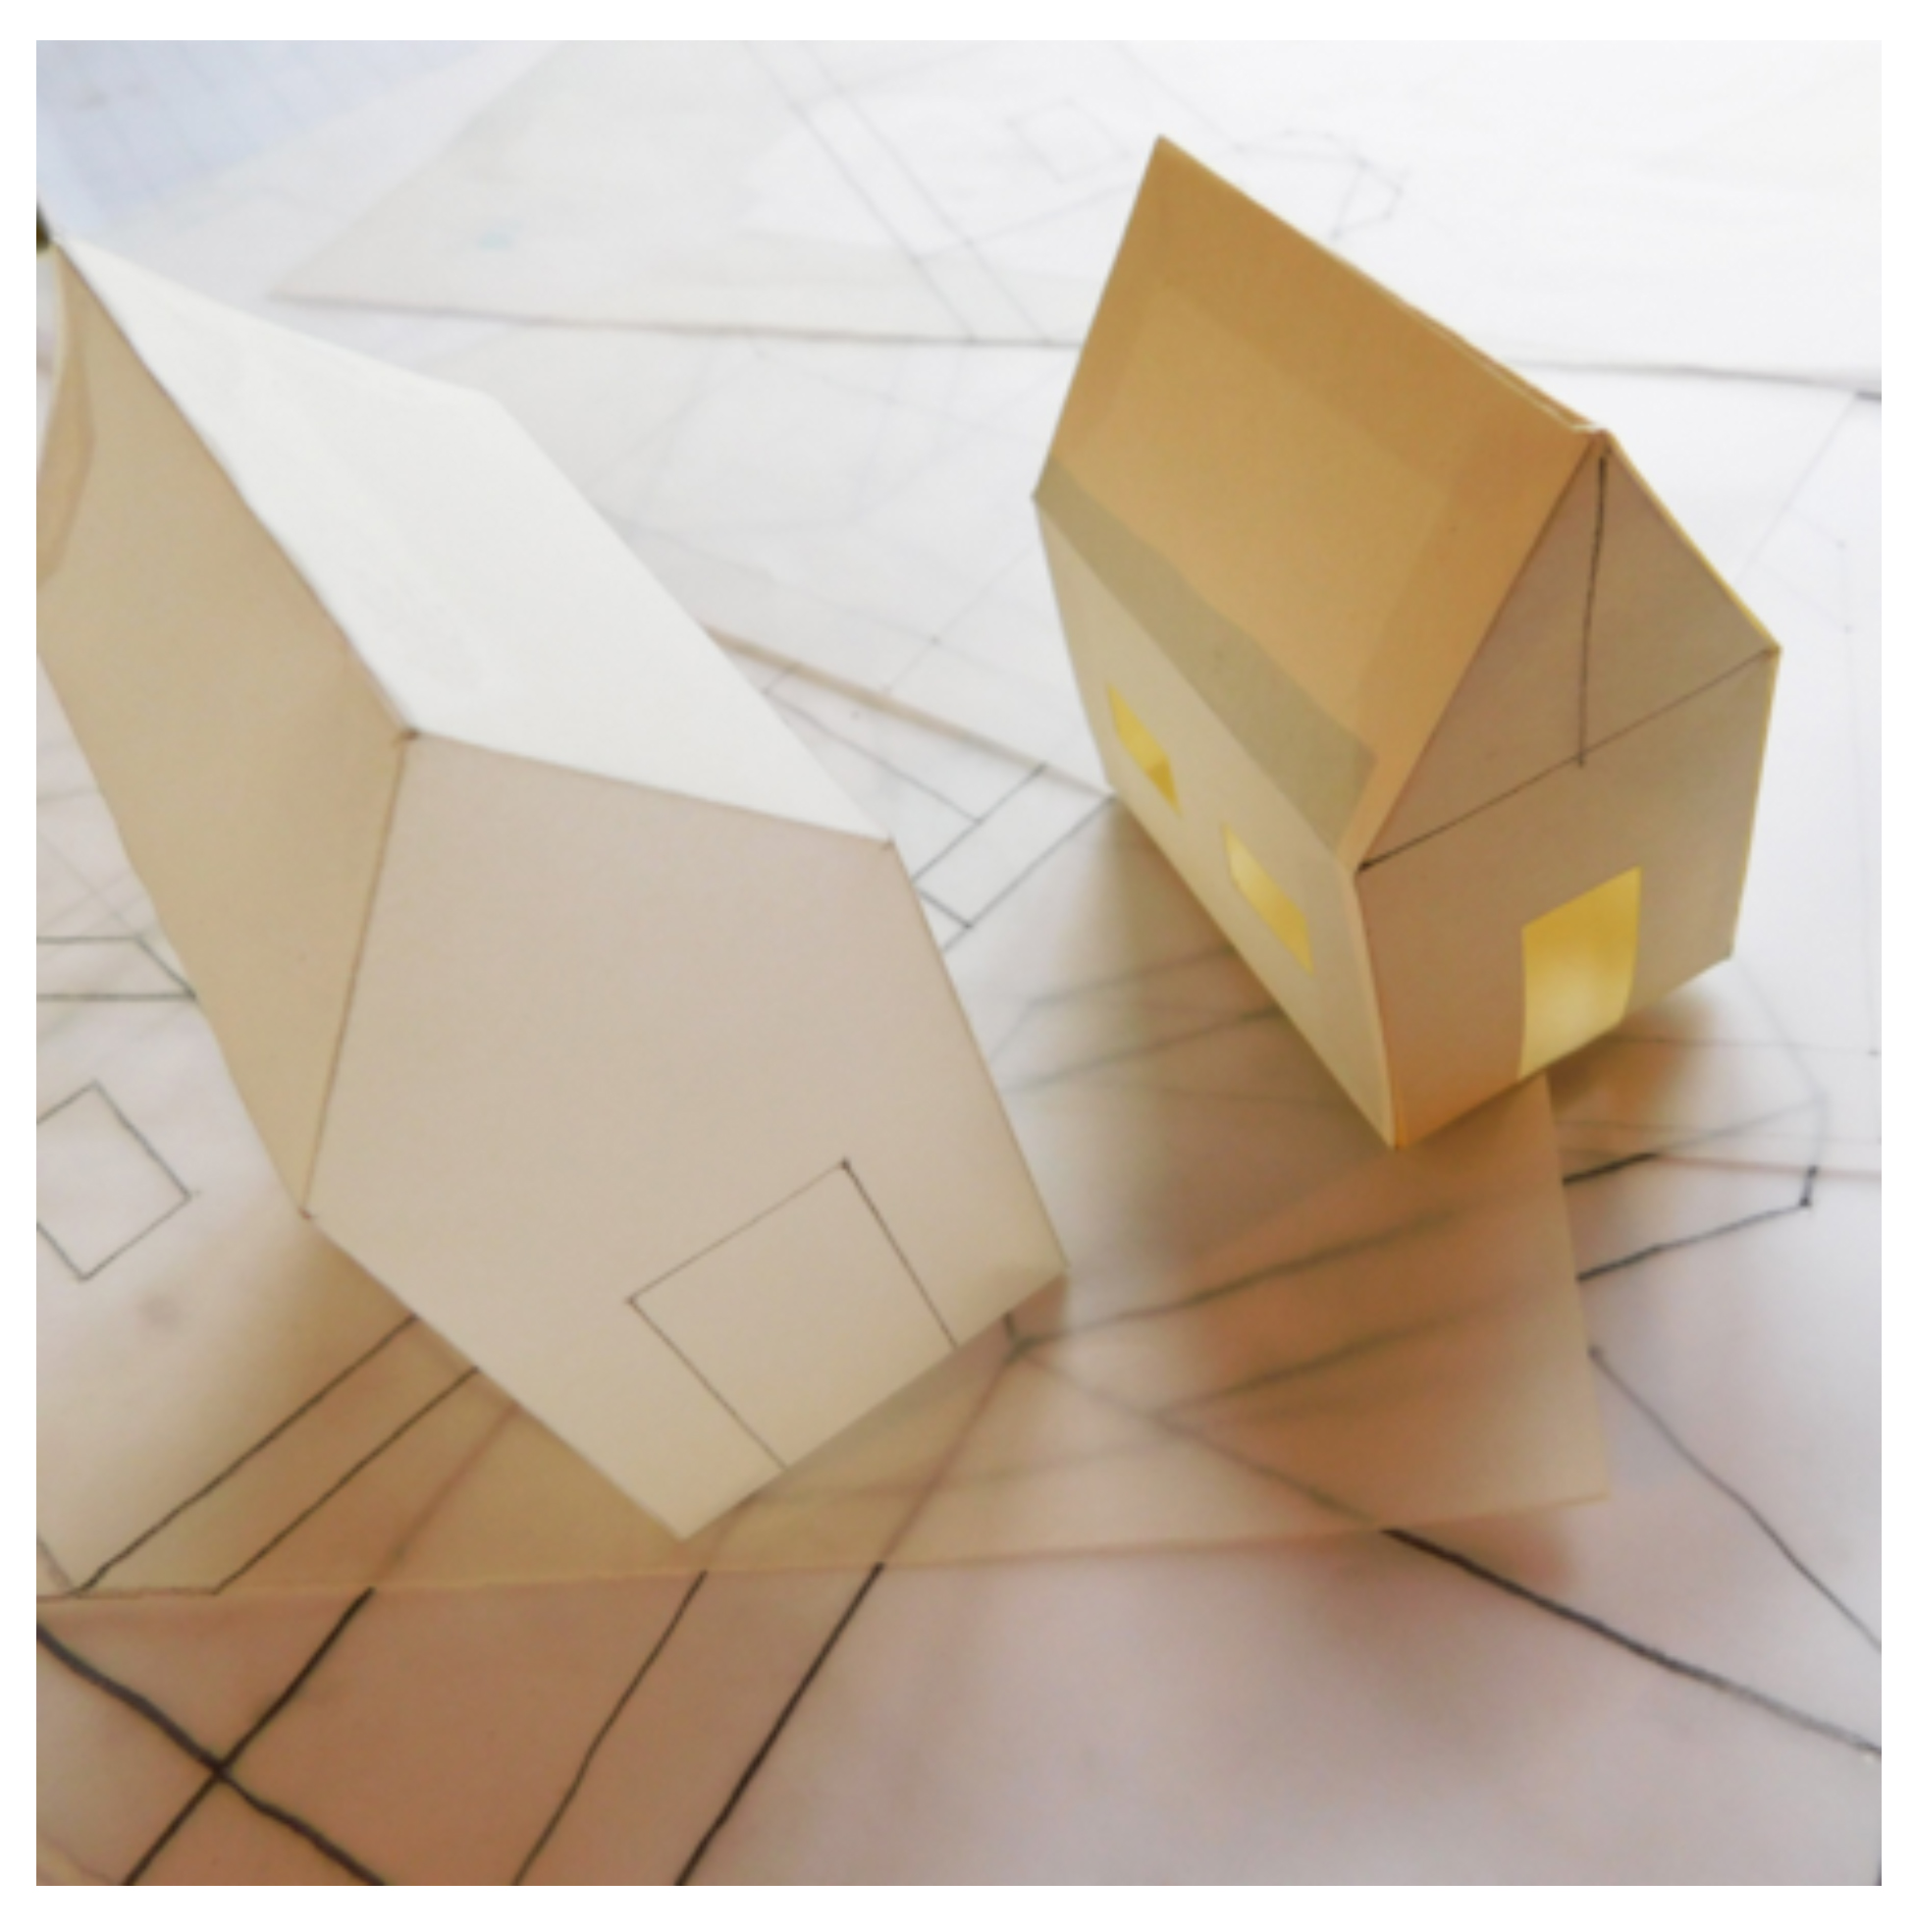 topshed paper house1.jpg